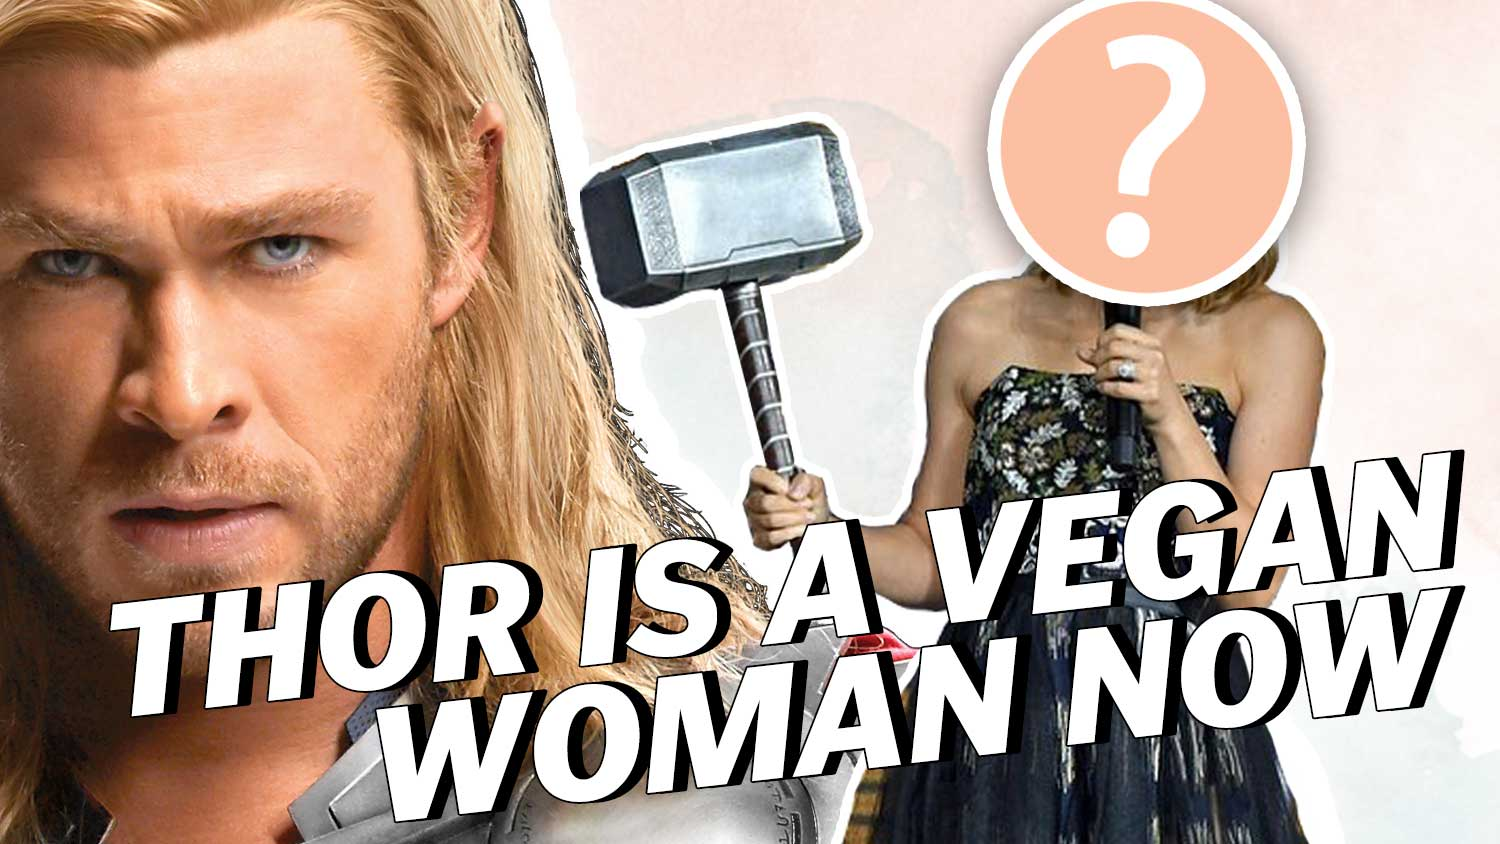 Thor Is A Vegan Woman